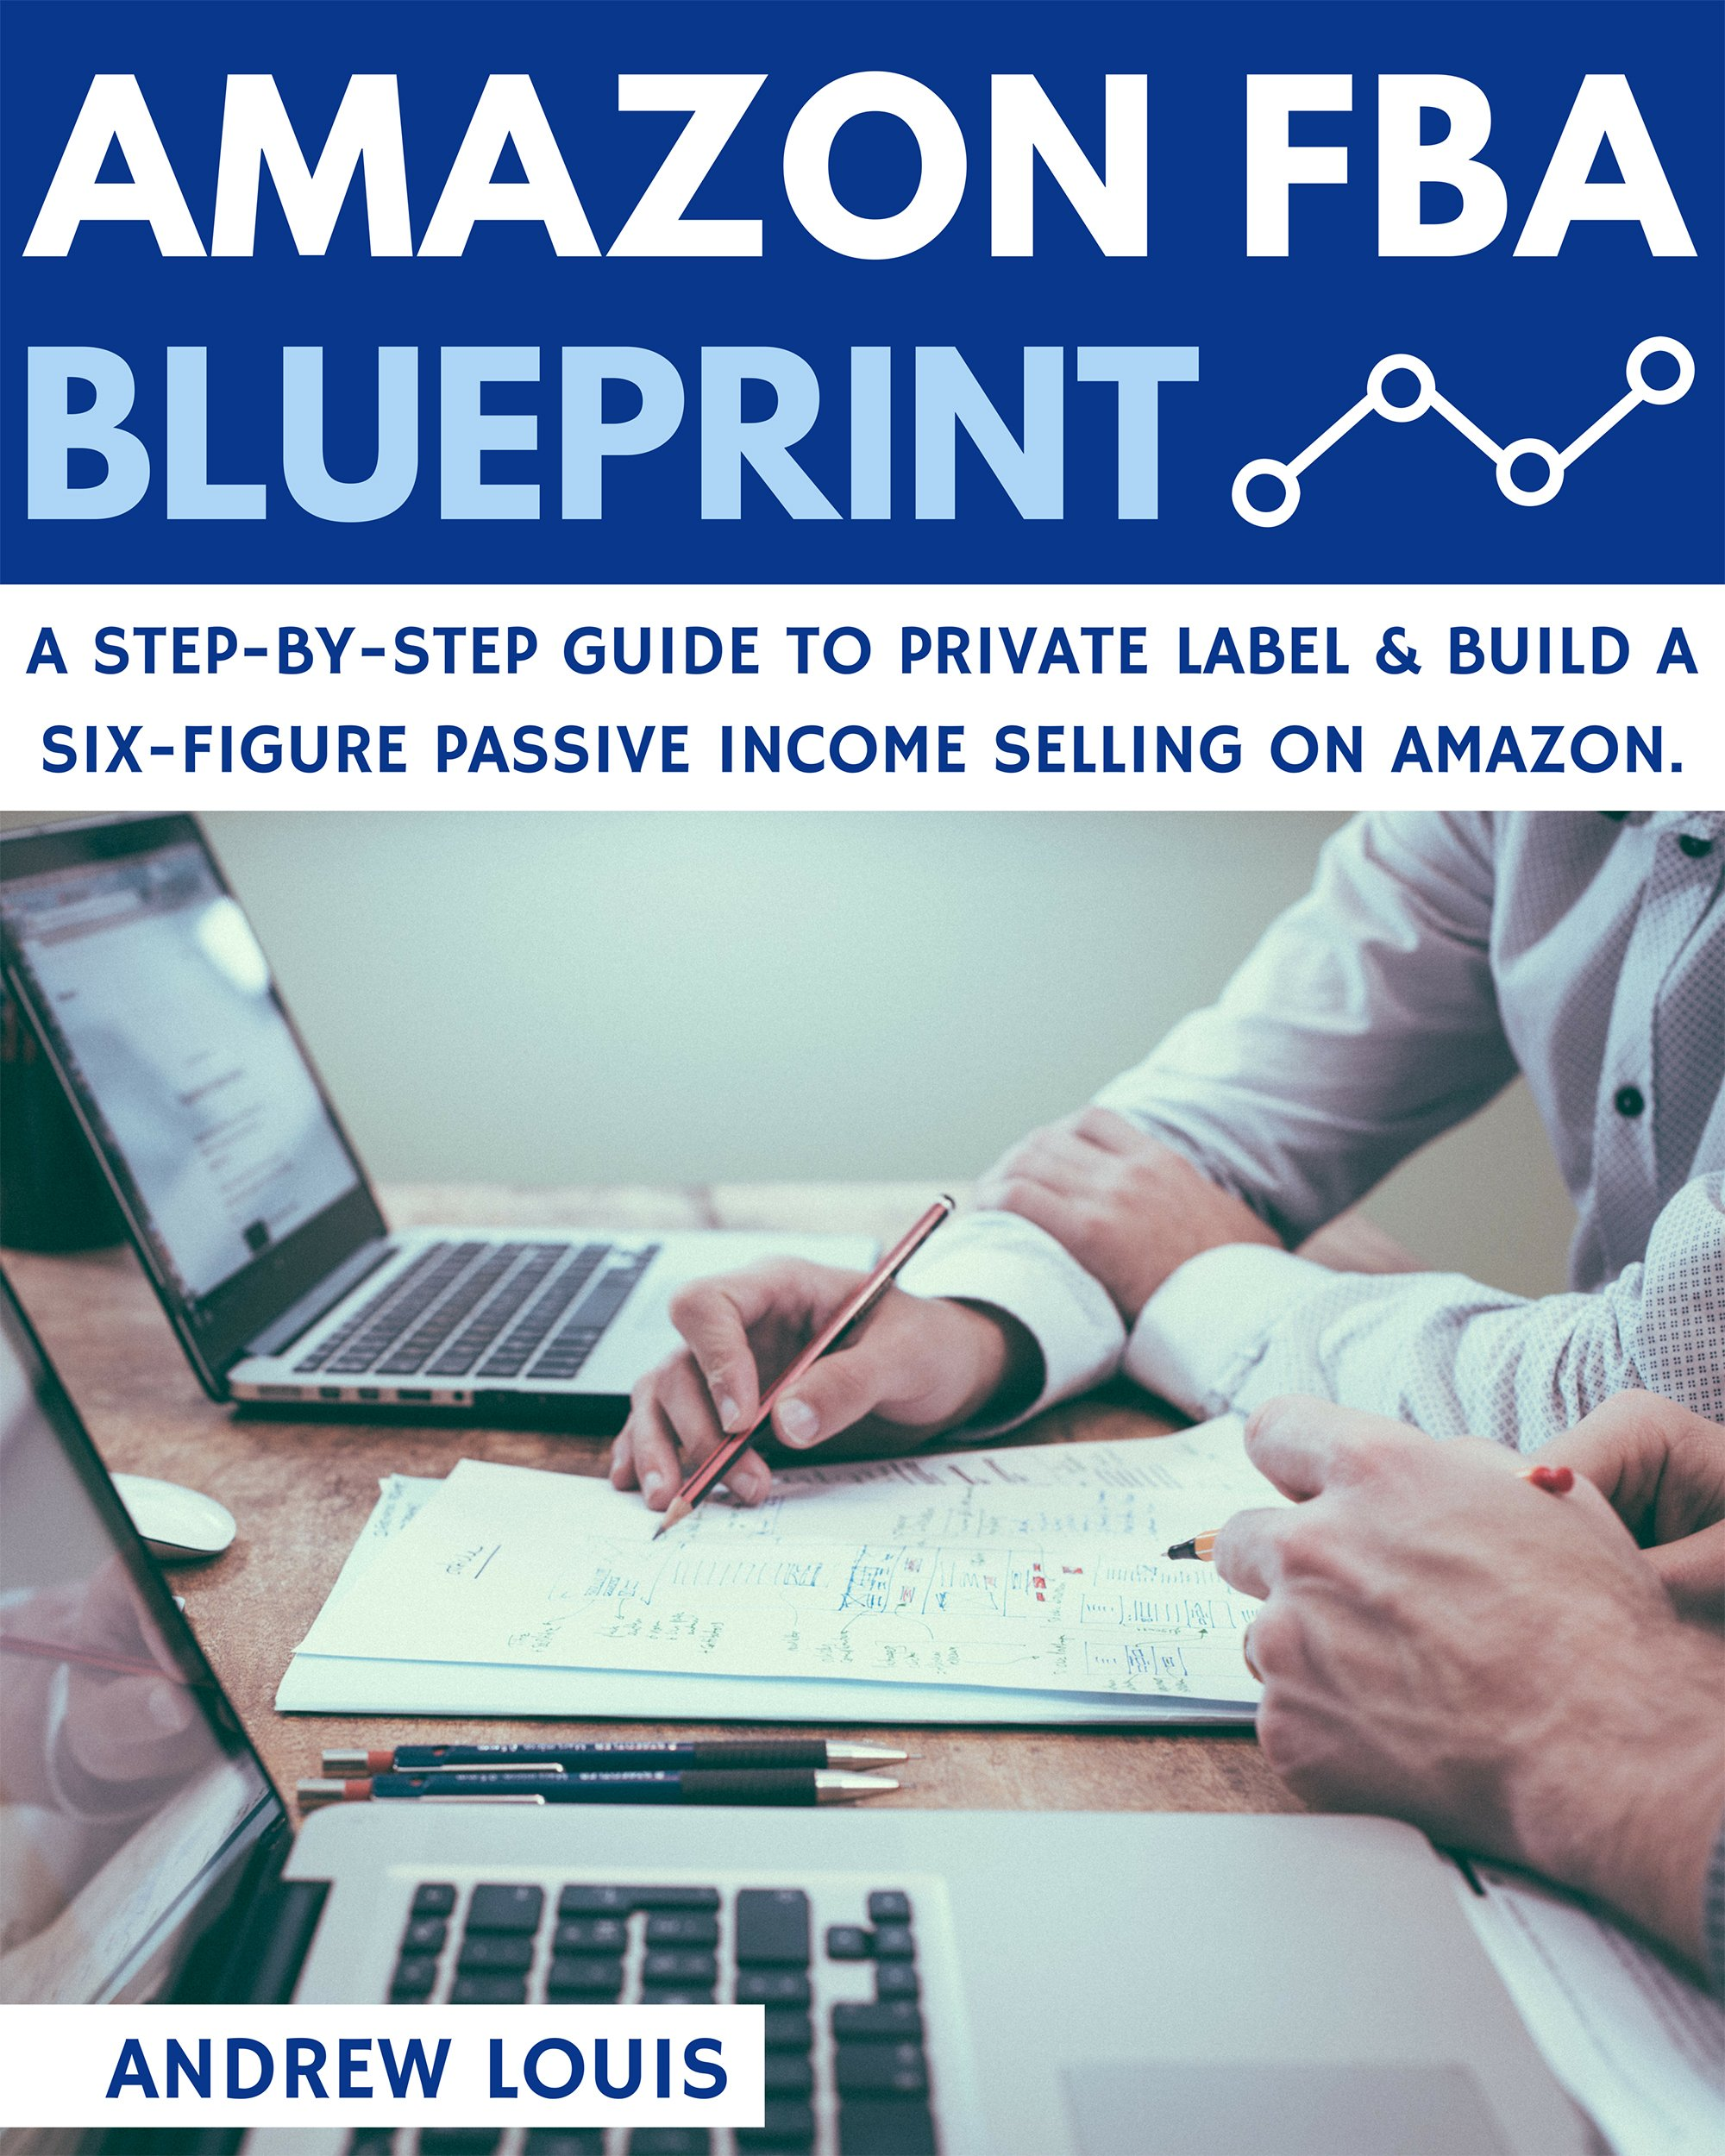 Amazon FBA  Amazon FBA Blueprint  A Step By Step Guide To Private Label And Build A Six Figure Passive Income Selling On Amazon  Amazon FBA Private Label Passive Income   English Edition